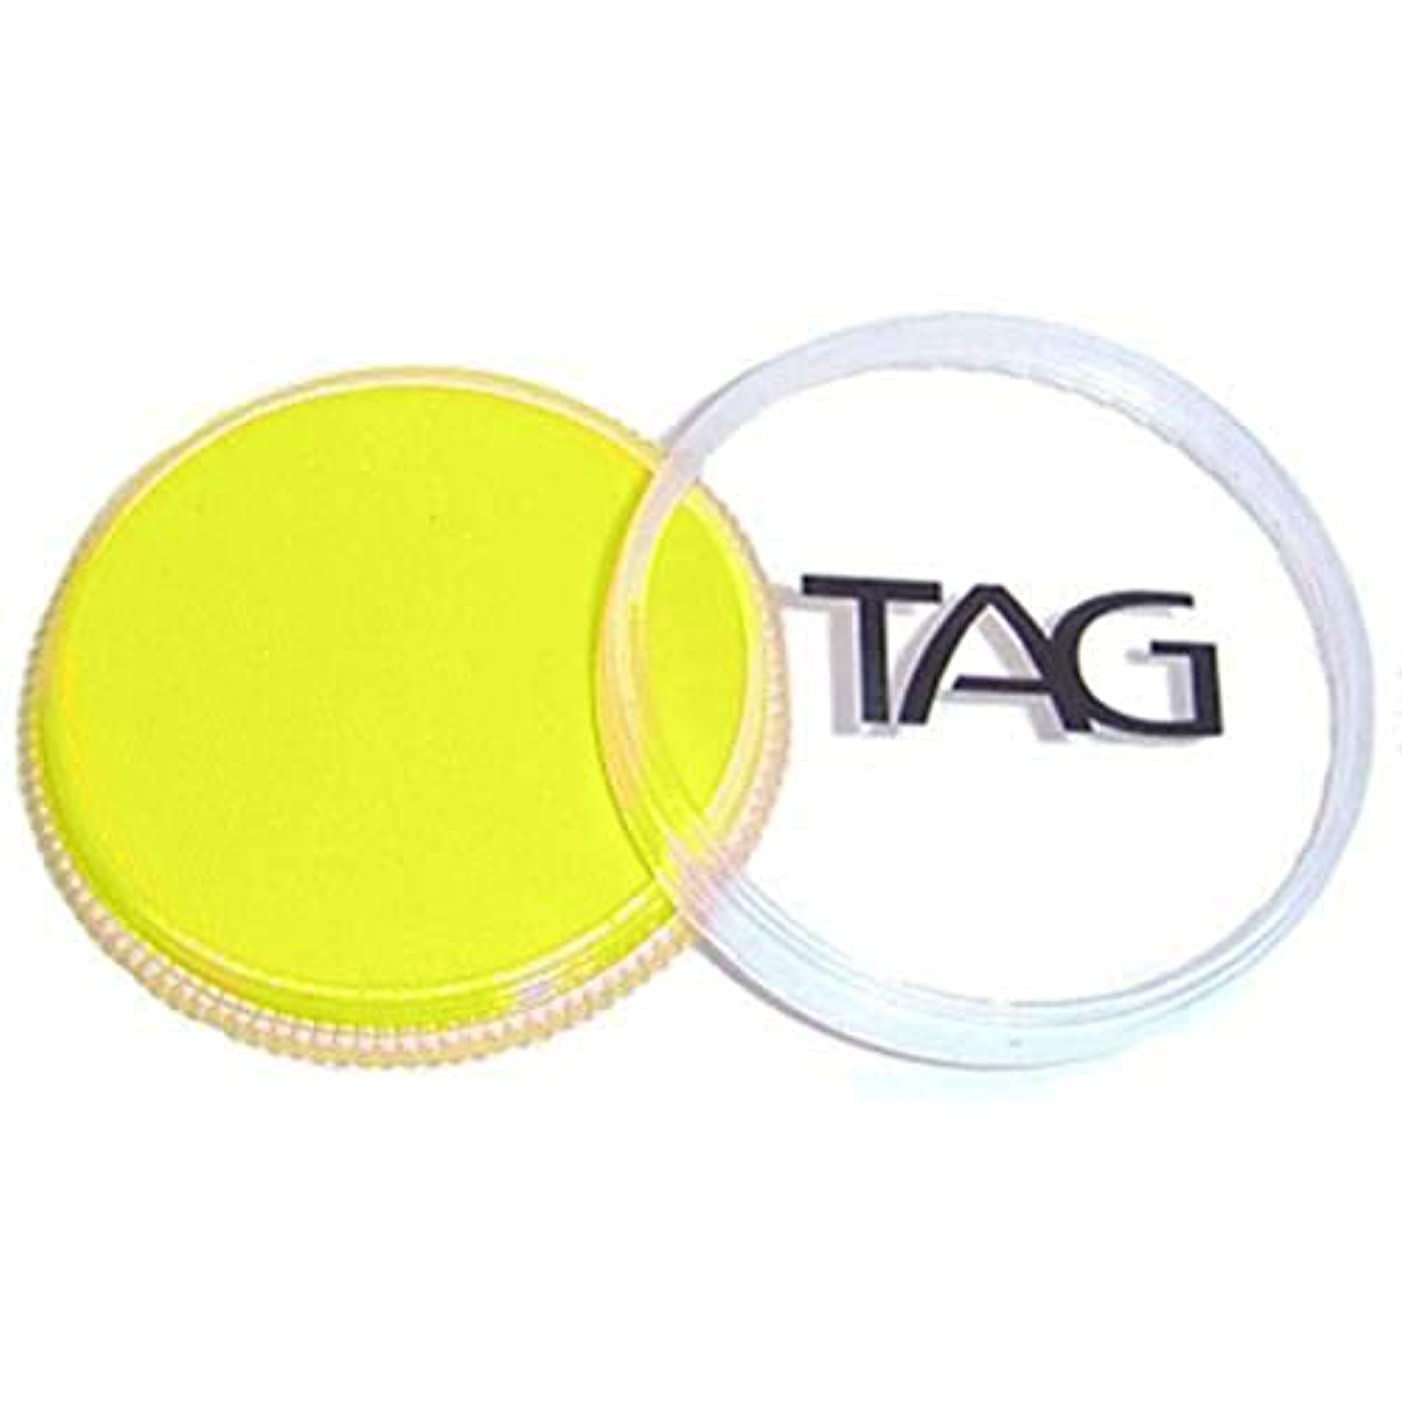 TAG Face Paints - Neon Yellow (32 gm)